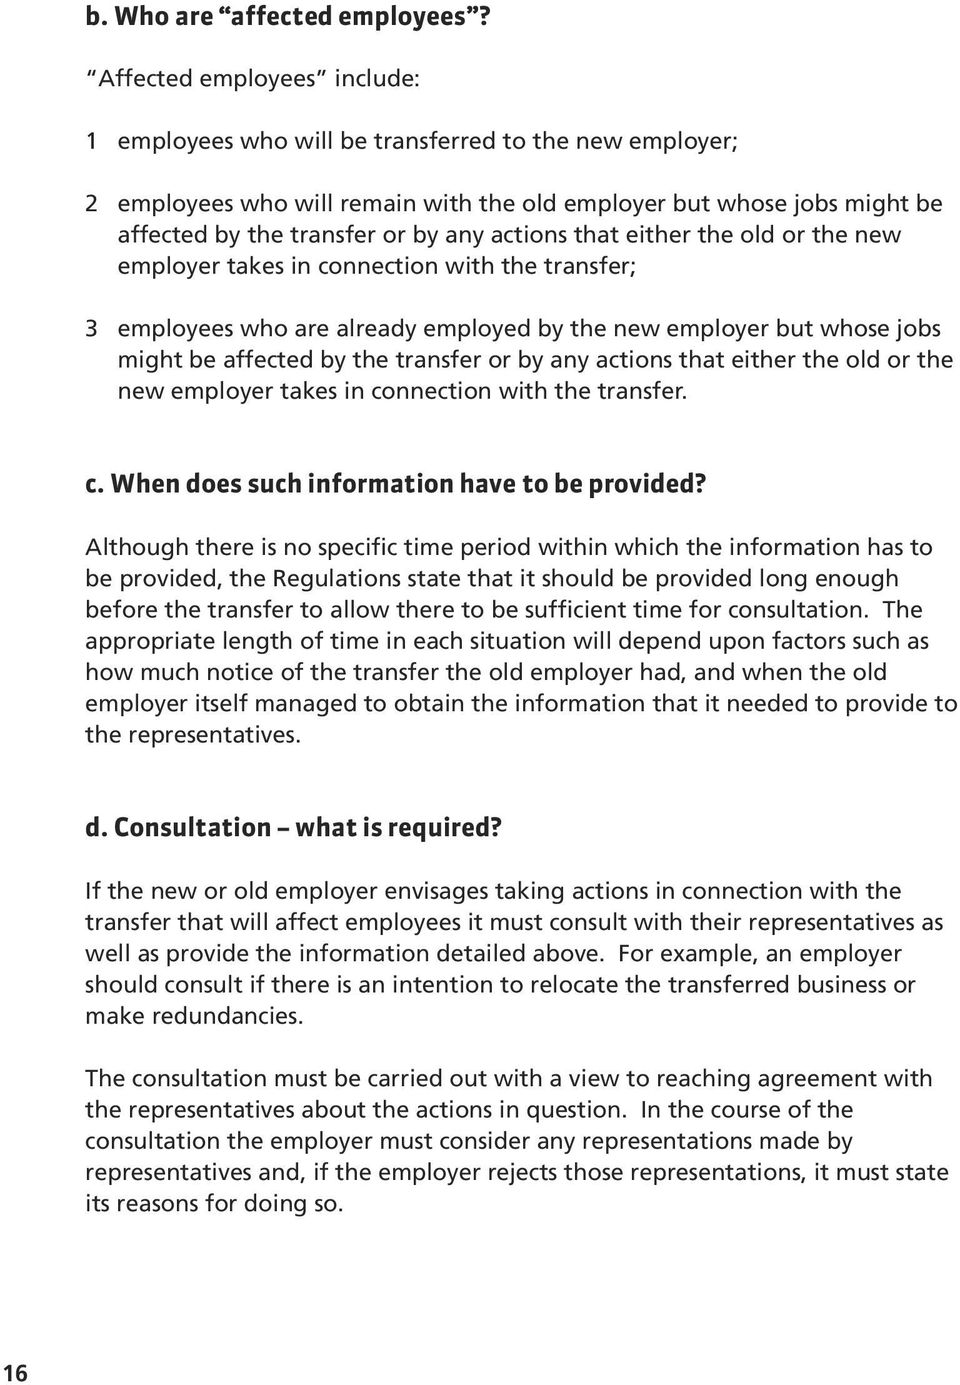 actions that either the old or the new employer takes in connection with the transfer; 3 employees who are already employed by the new employer but whose jobs might be affected by the transfer or by